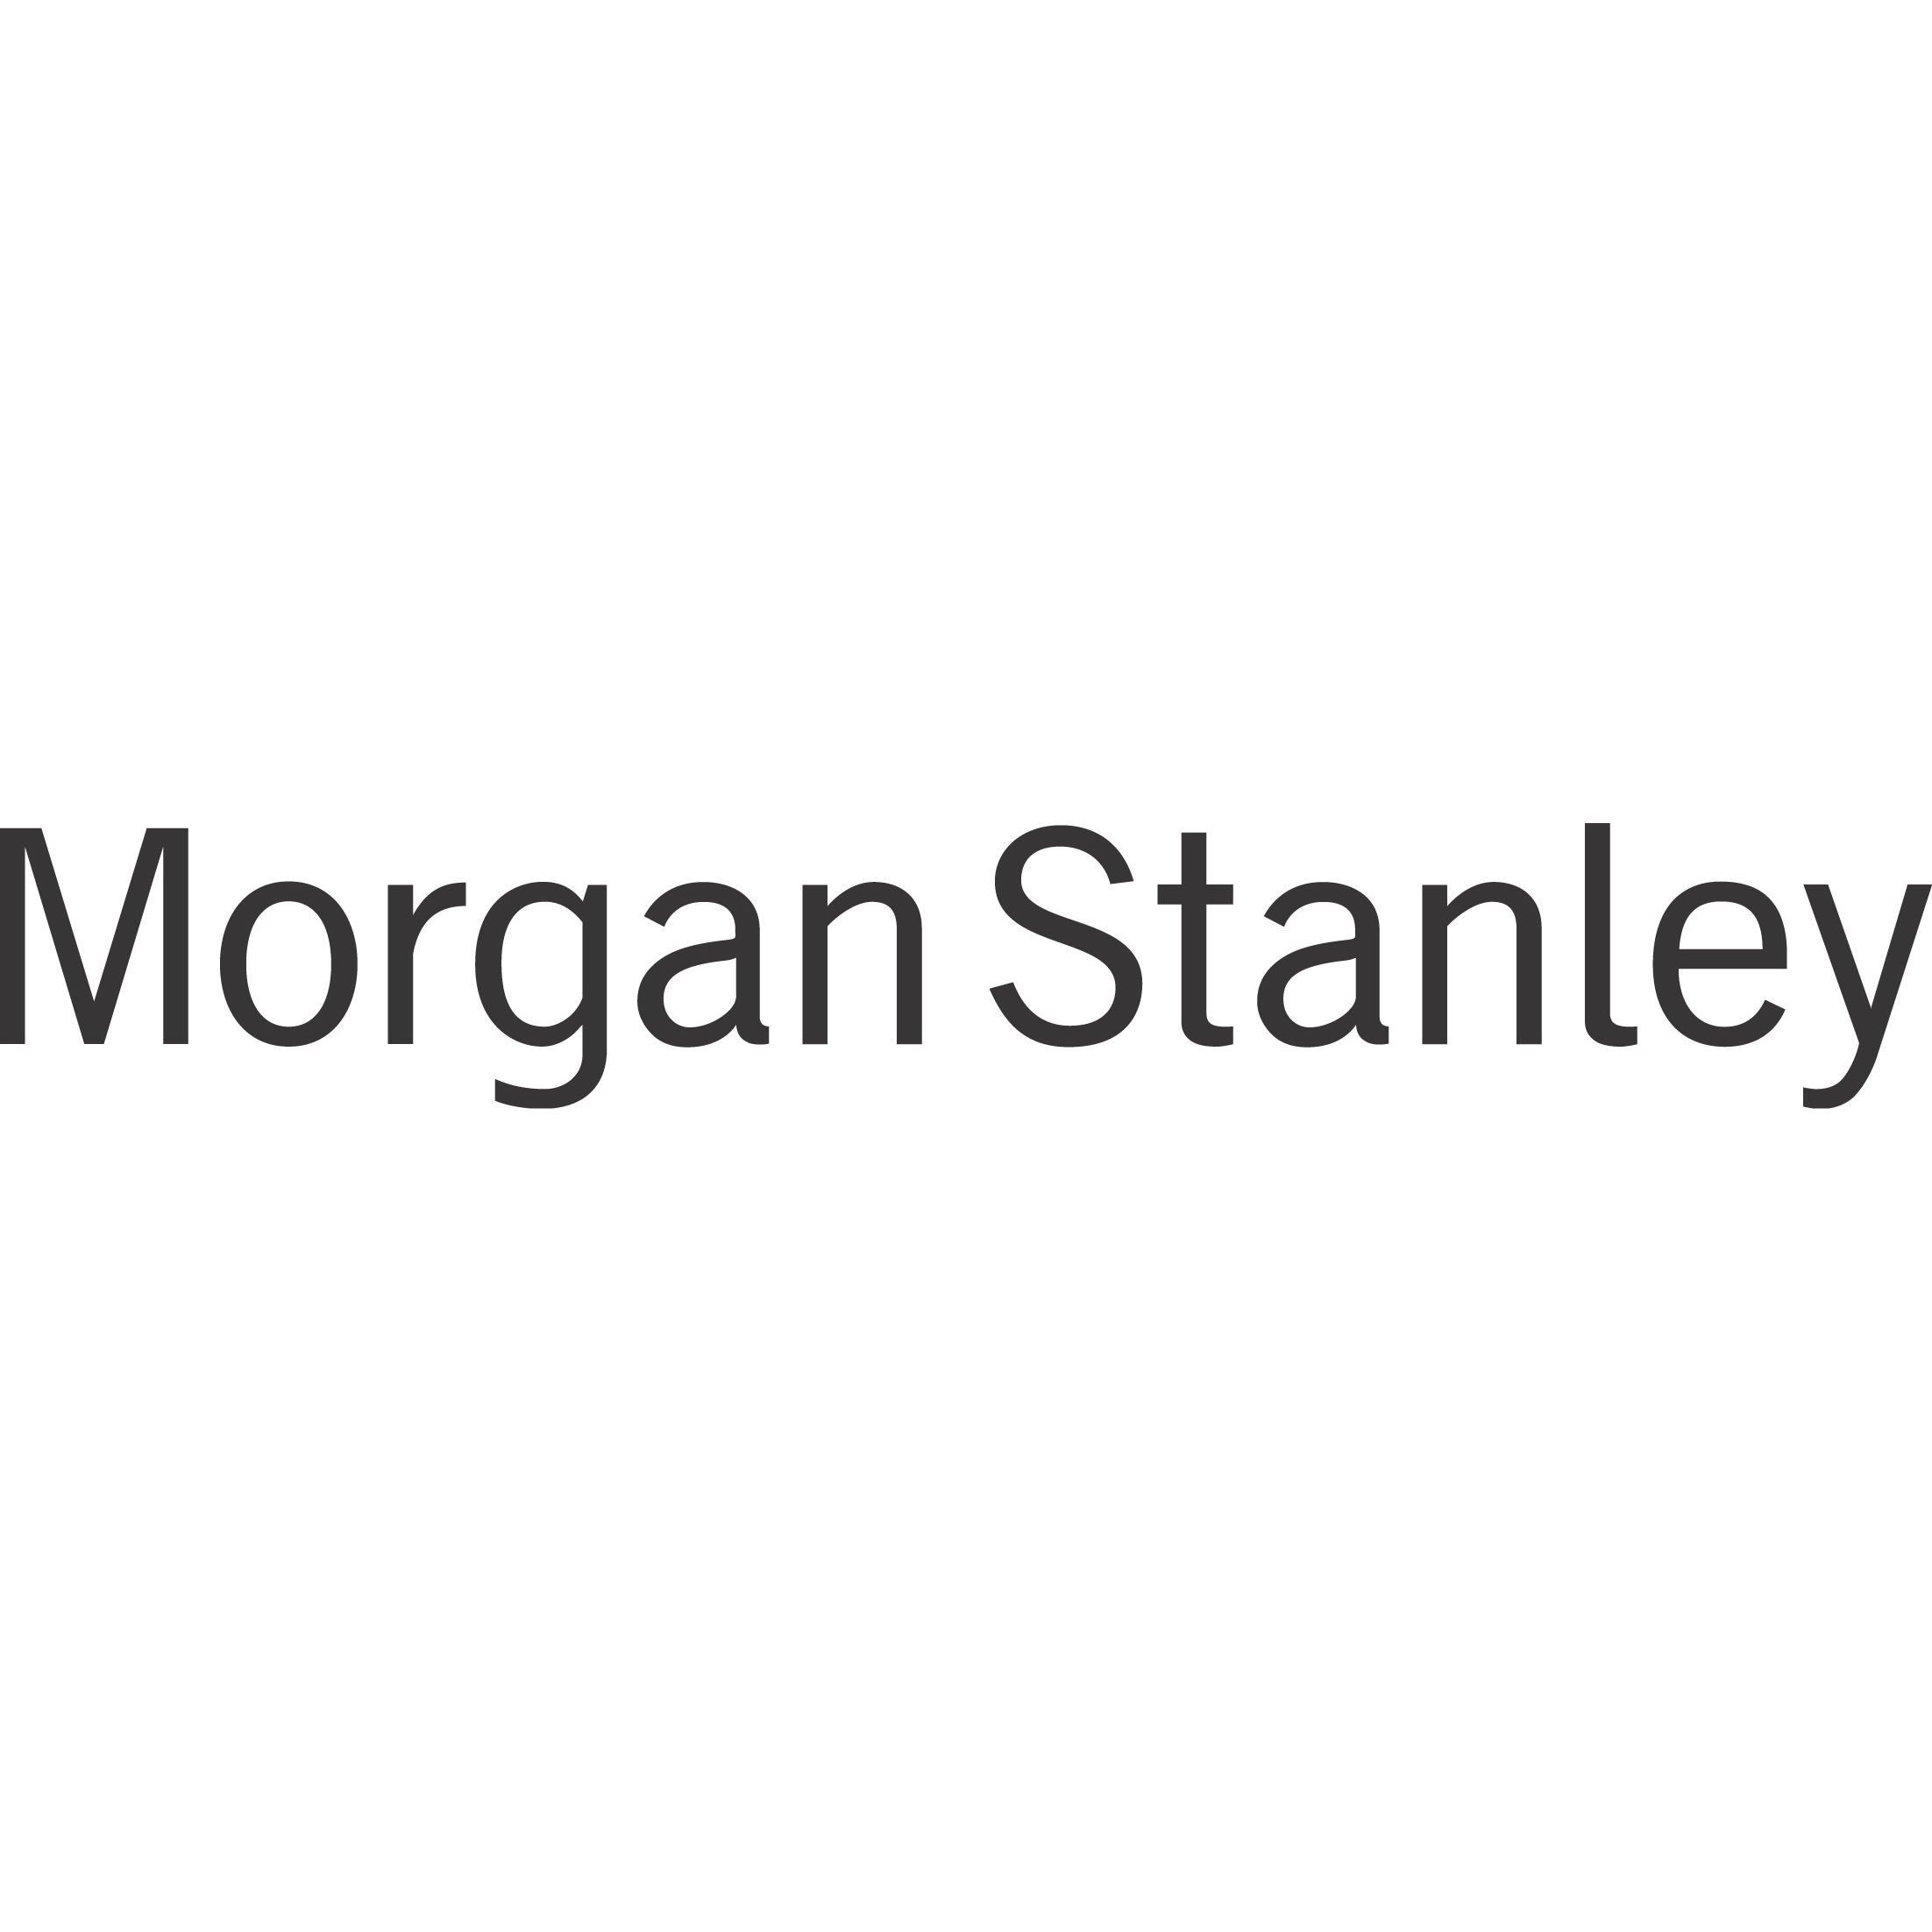 Shawna Farnol Bumpus - Morgan Stanley | Financial Advisor in Perrysburg,Ohio